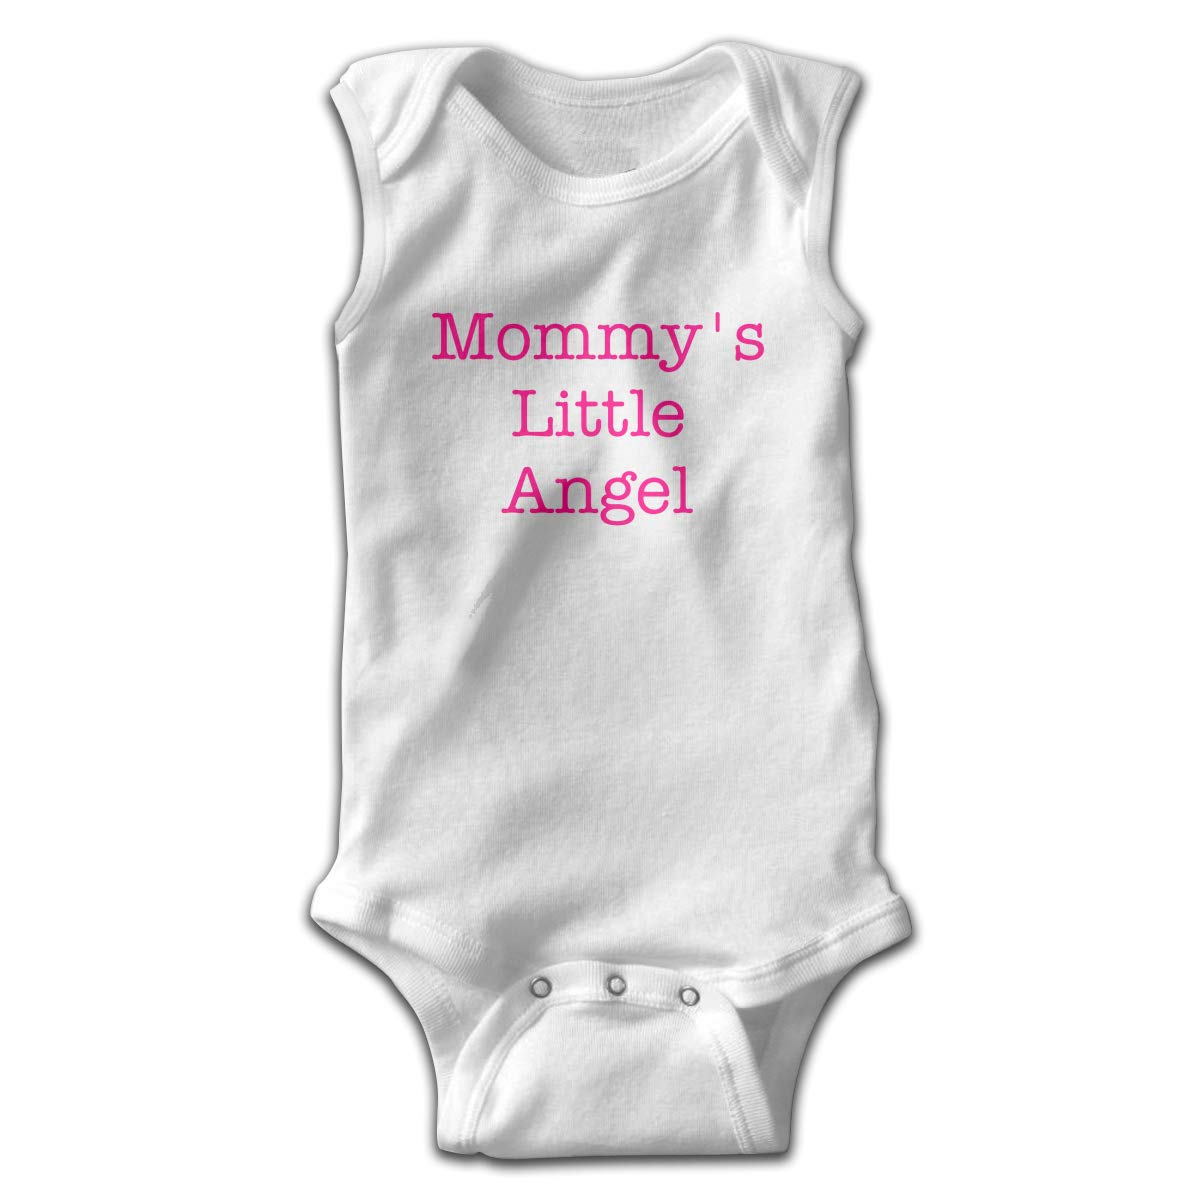 Mommys Little Angel Infant Baby Clothes Romper Sleeveless Summer Novelty Funny Gift for Baby